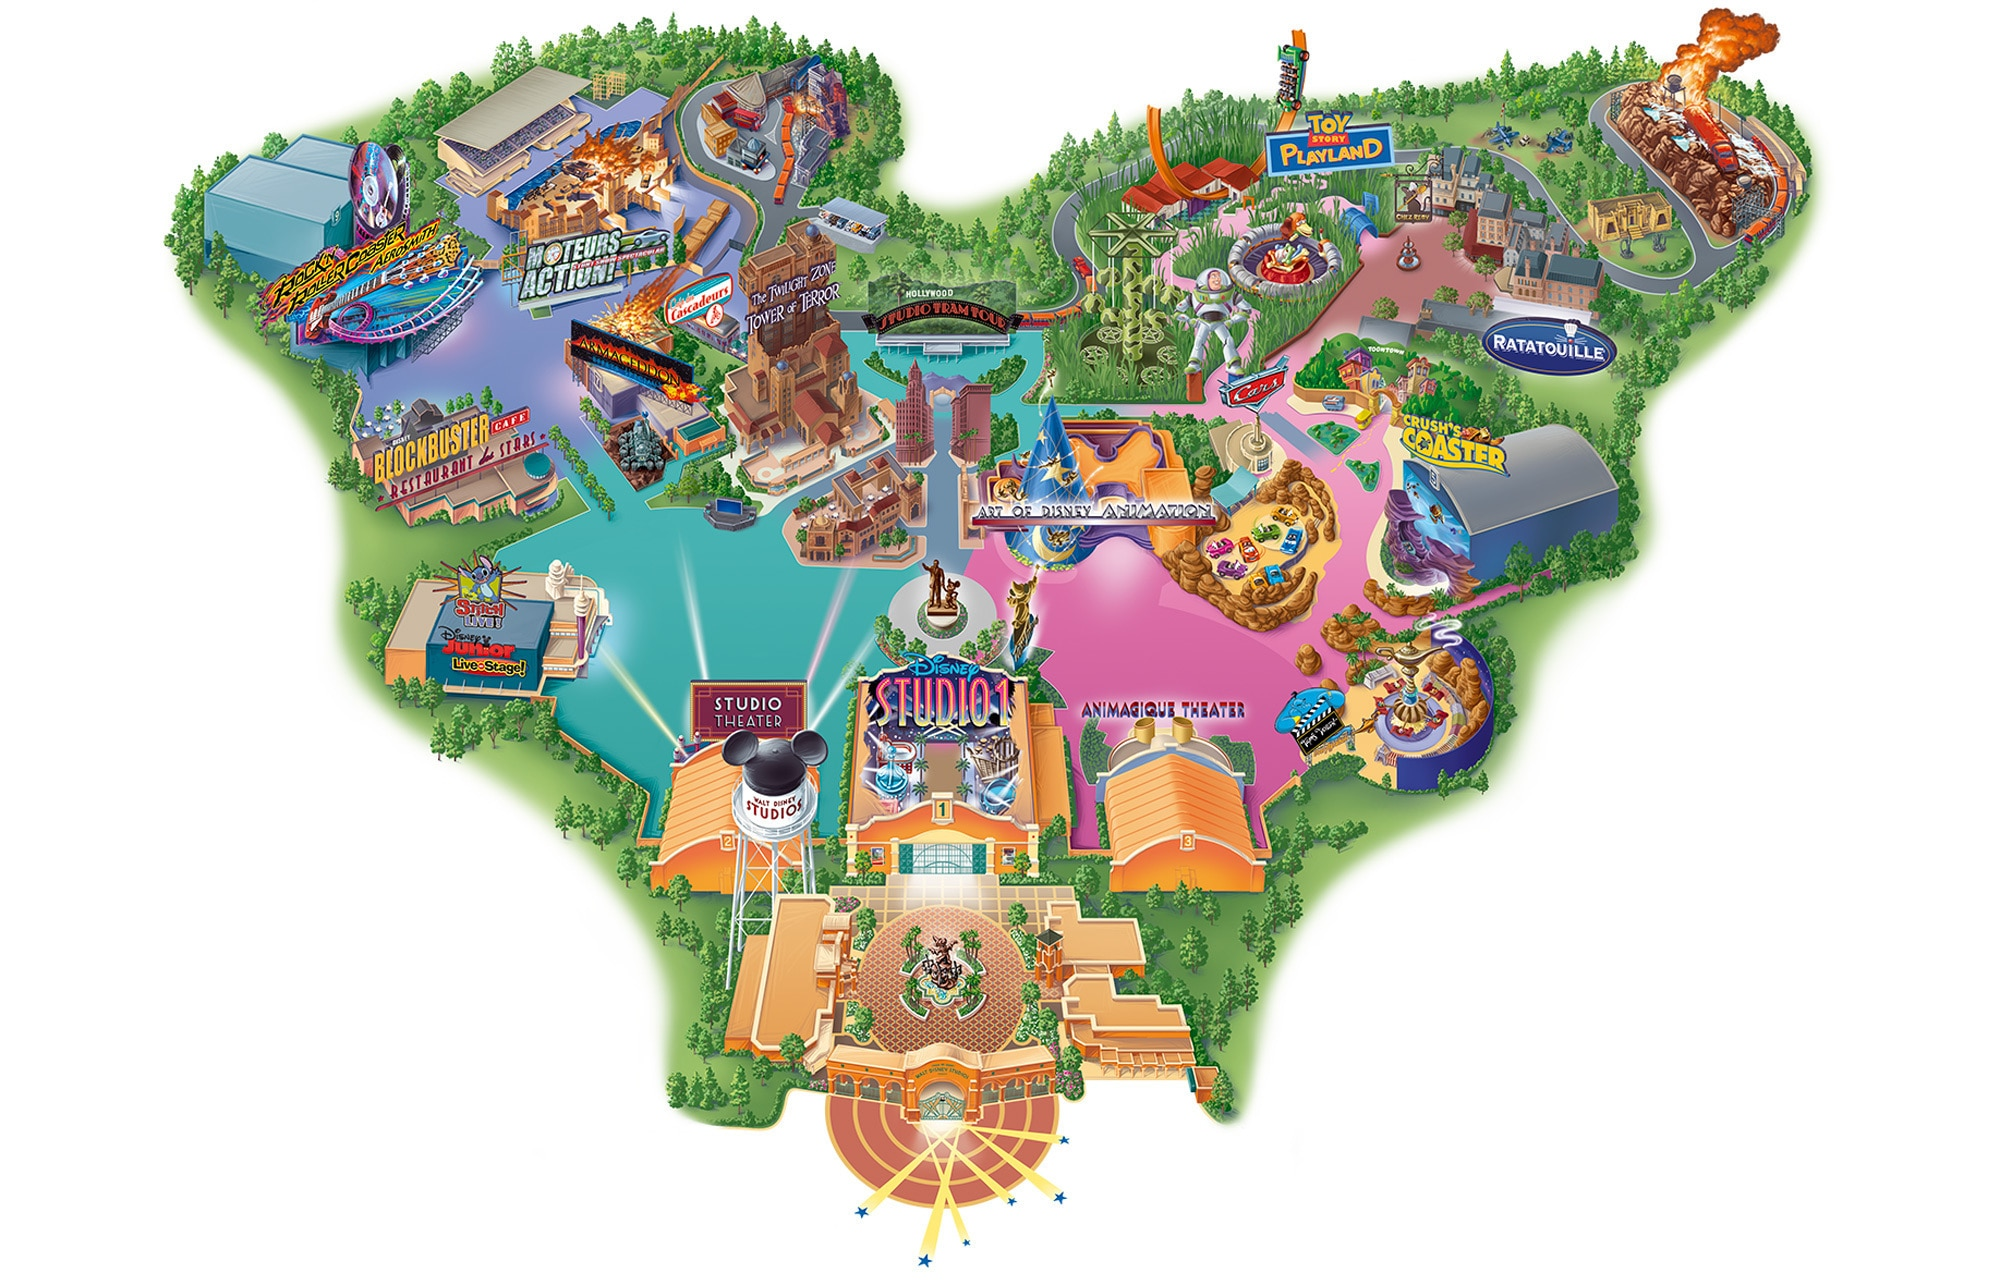 Map of Walt Disney Studios Park at Disneyland Paris